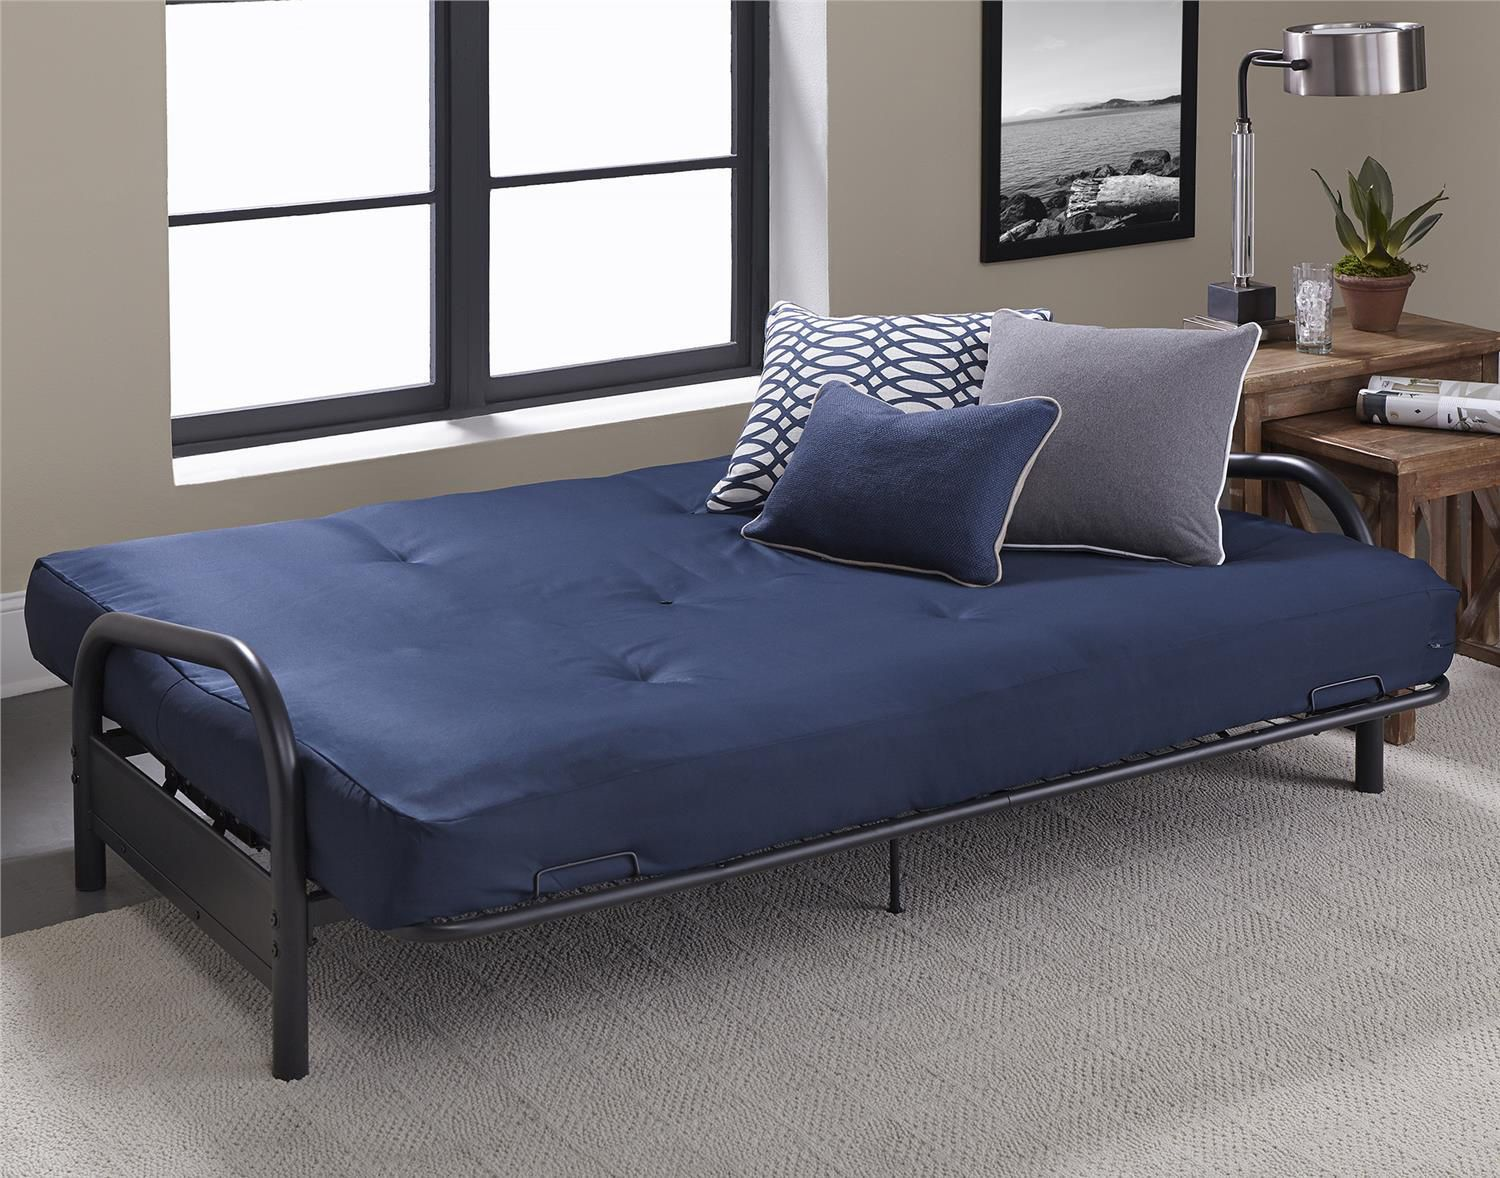 Futon Beds With Mattress Included Design